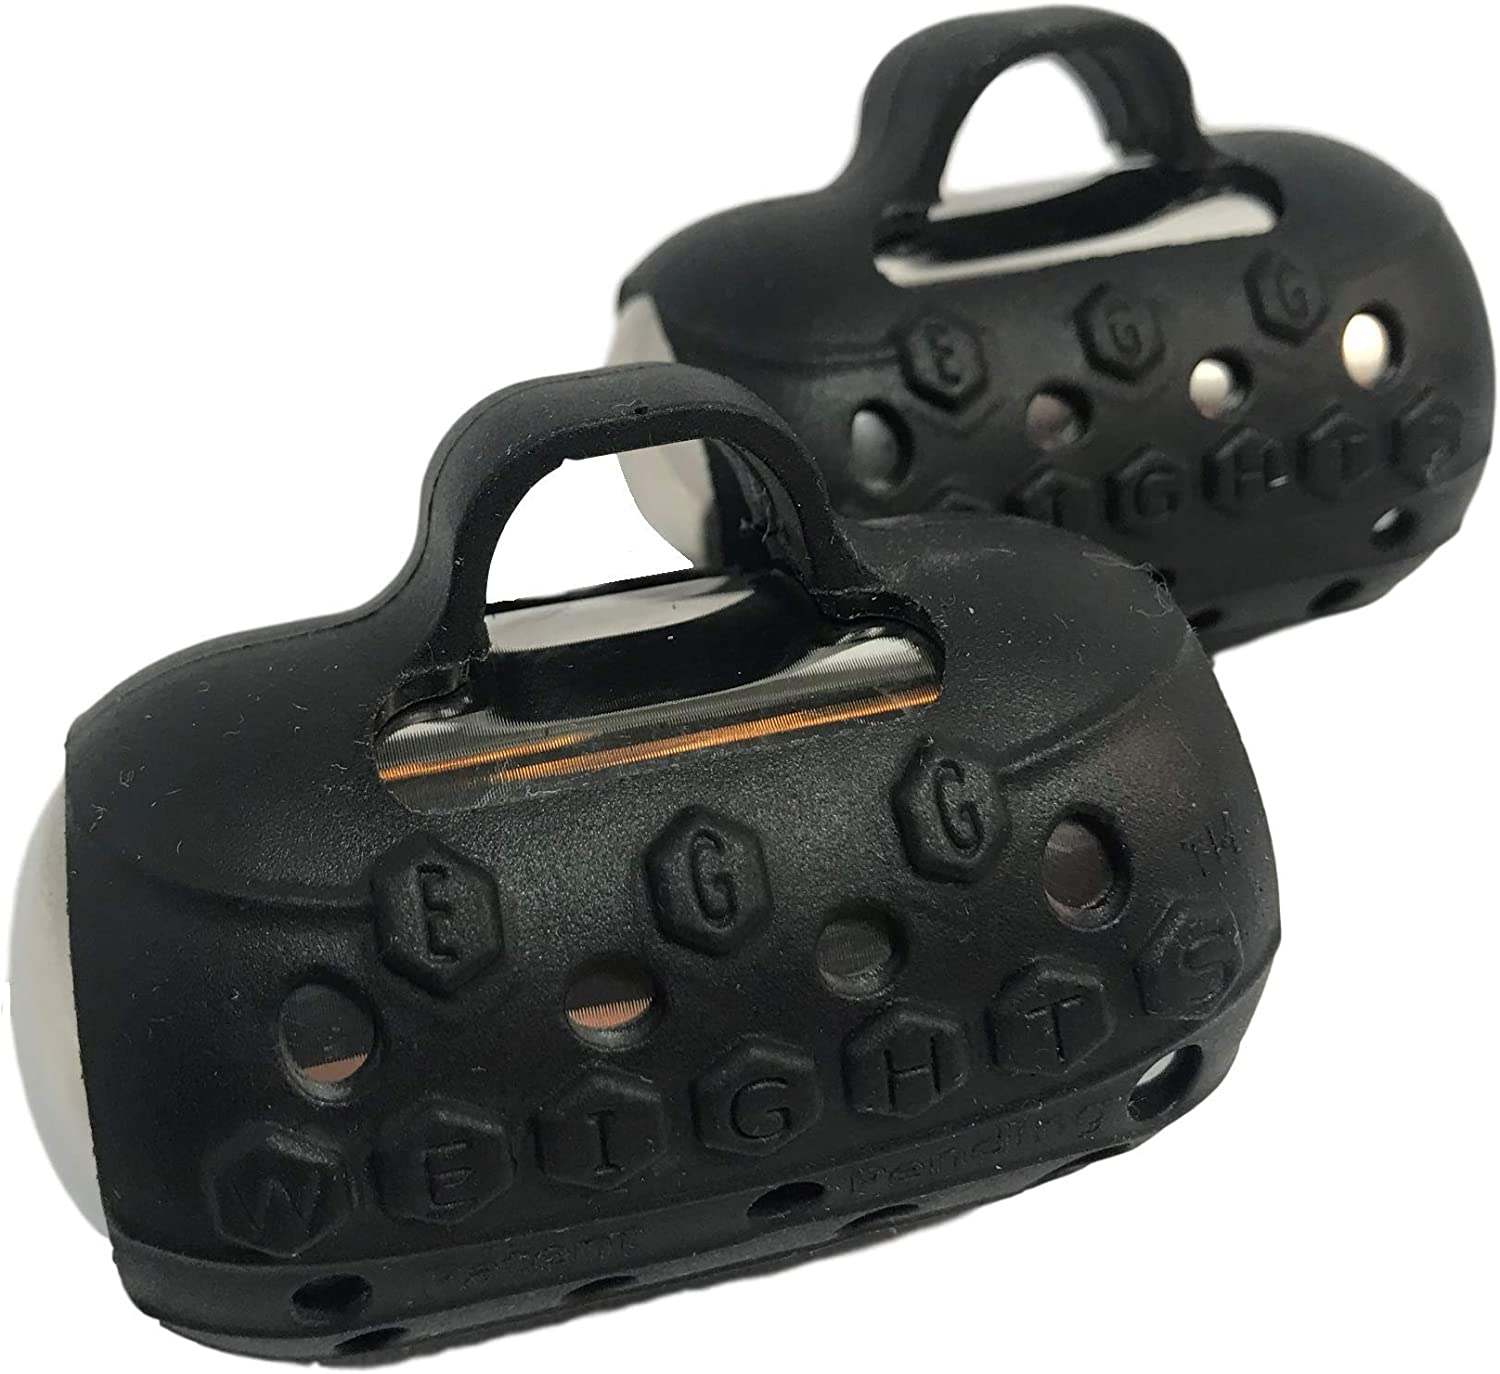 Egg Weights Hand Dumbbell Sets for Men and Women Yoga and More Each Weight is Half The Total Set Weight Free Weights for Kickboxing Shadow Boxing